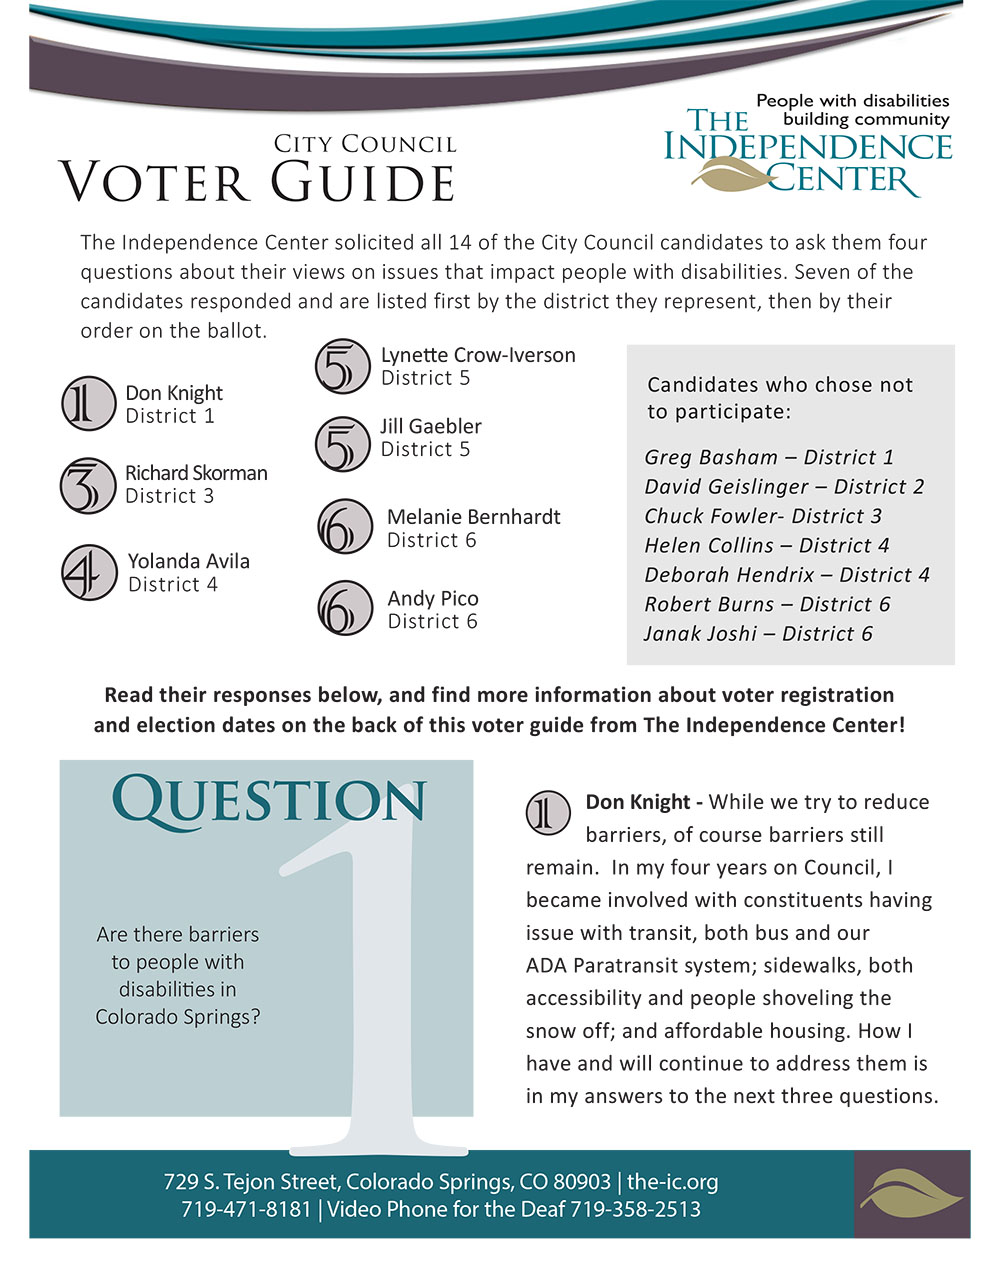 Click here to access the PDF file of the Get out the Vote informational flyer